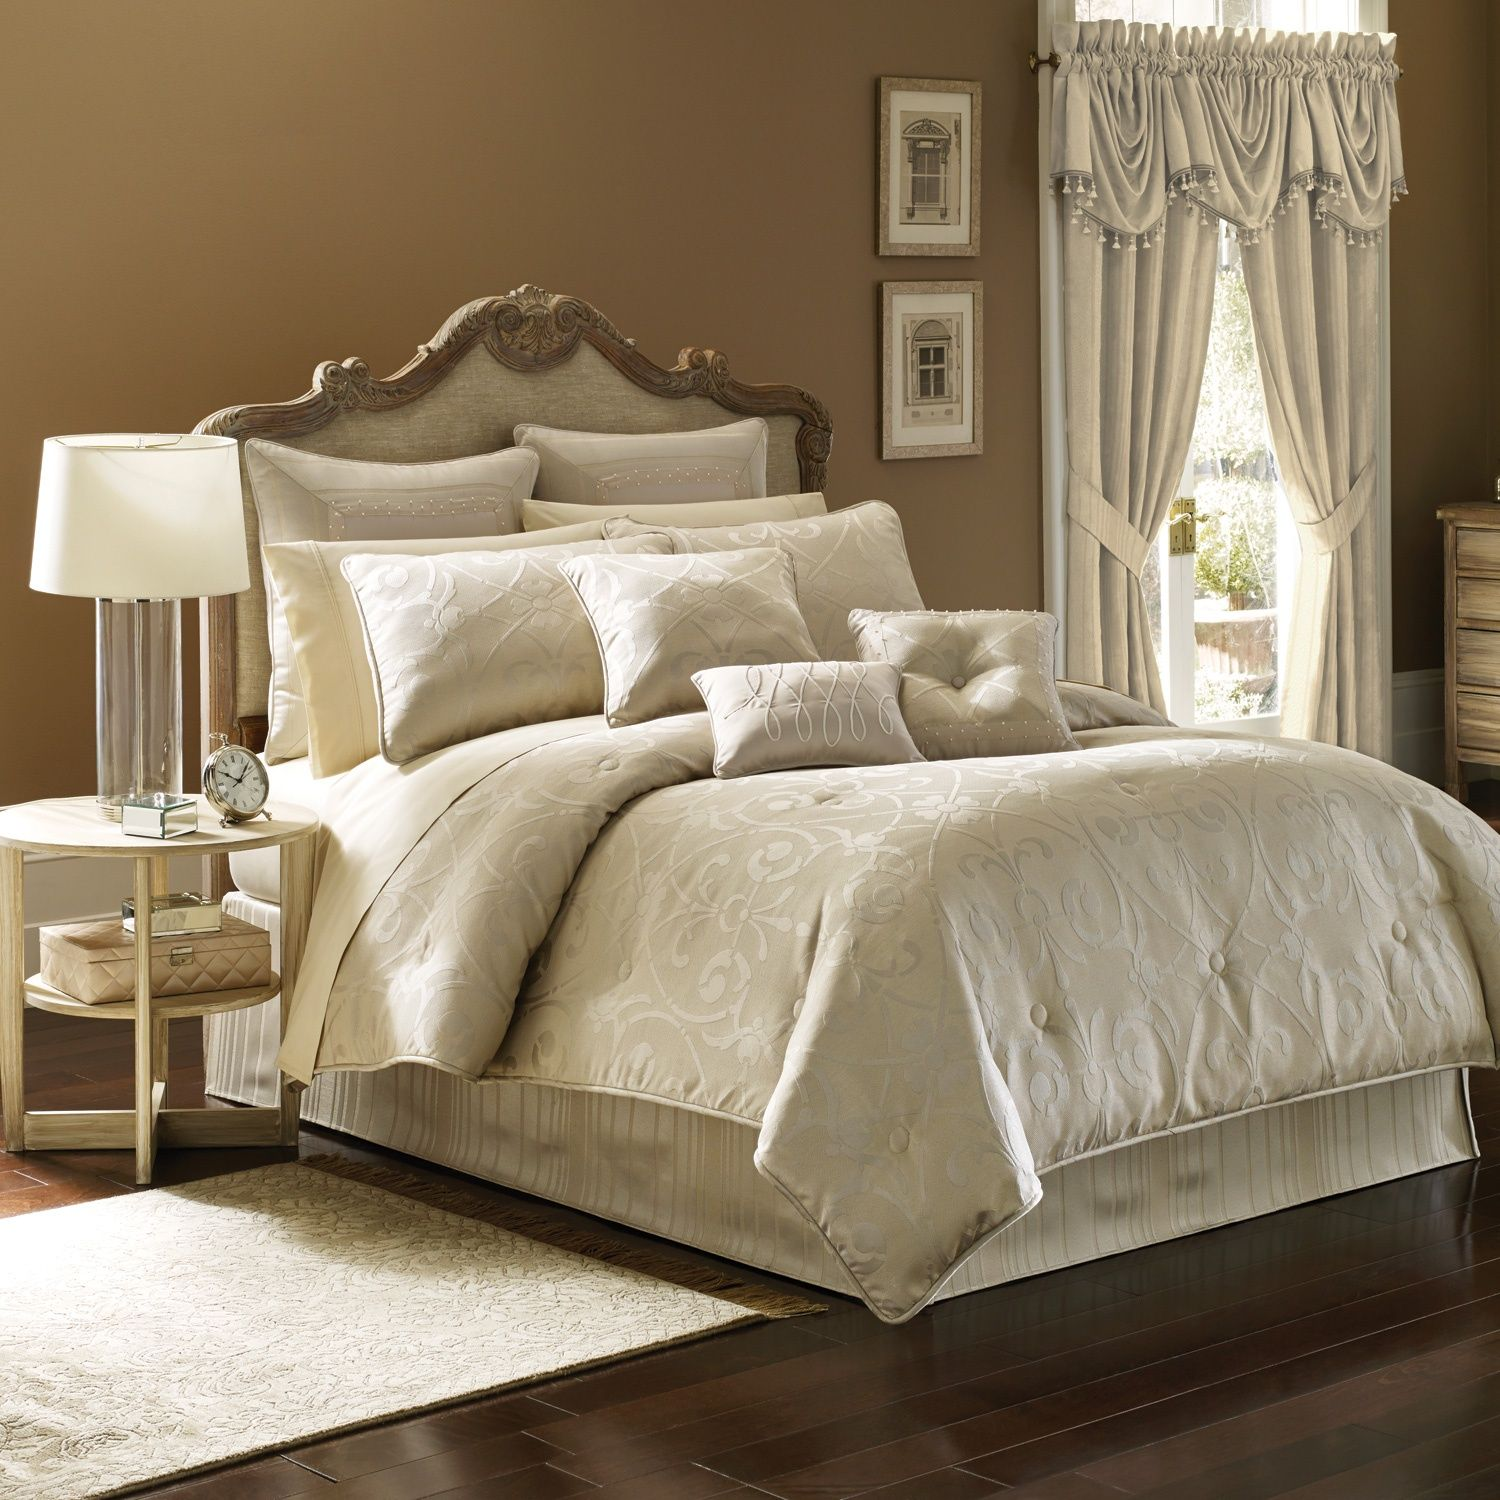 Comforters Sets, Bedding Collections, & Down Comforters at Linens ...